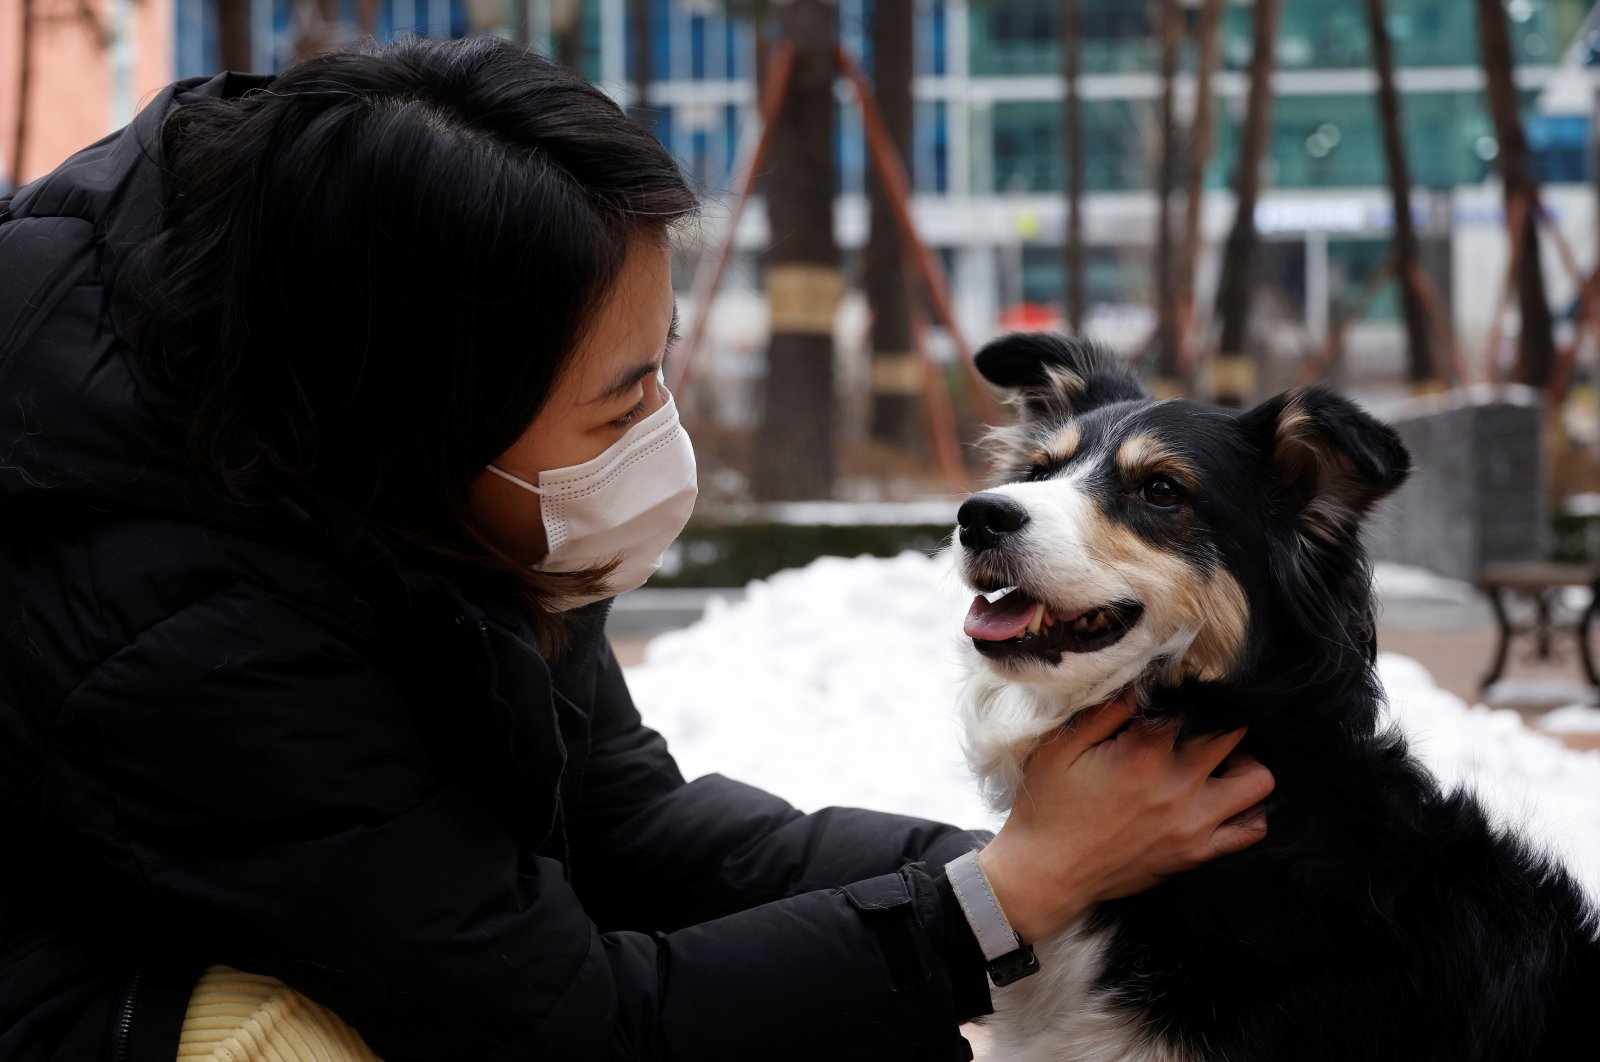 Moon Sae-mi pets her dog Godot as they demonstrate Petpuls, an AI-powered smart dog collar, in Seoul, South Korea, Jan. 11, 2021. (Reuters Photo)